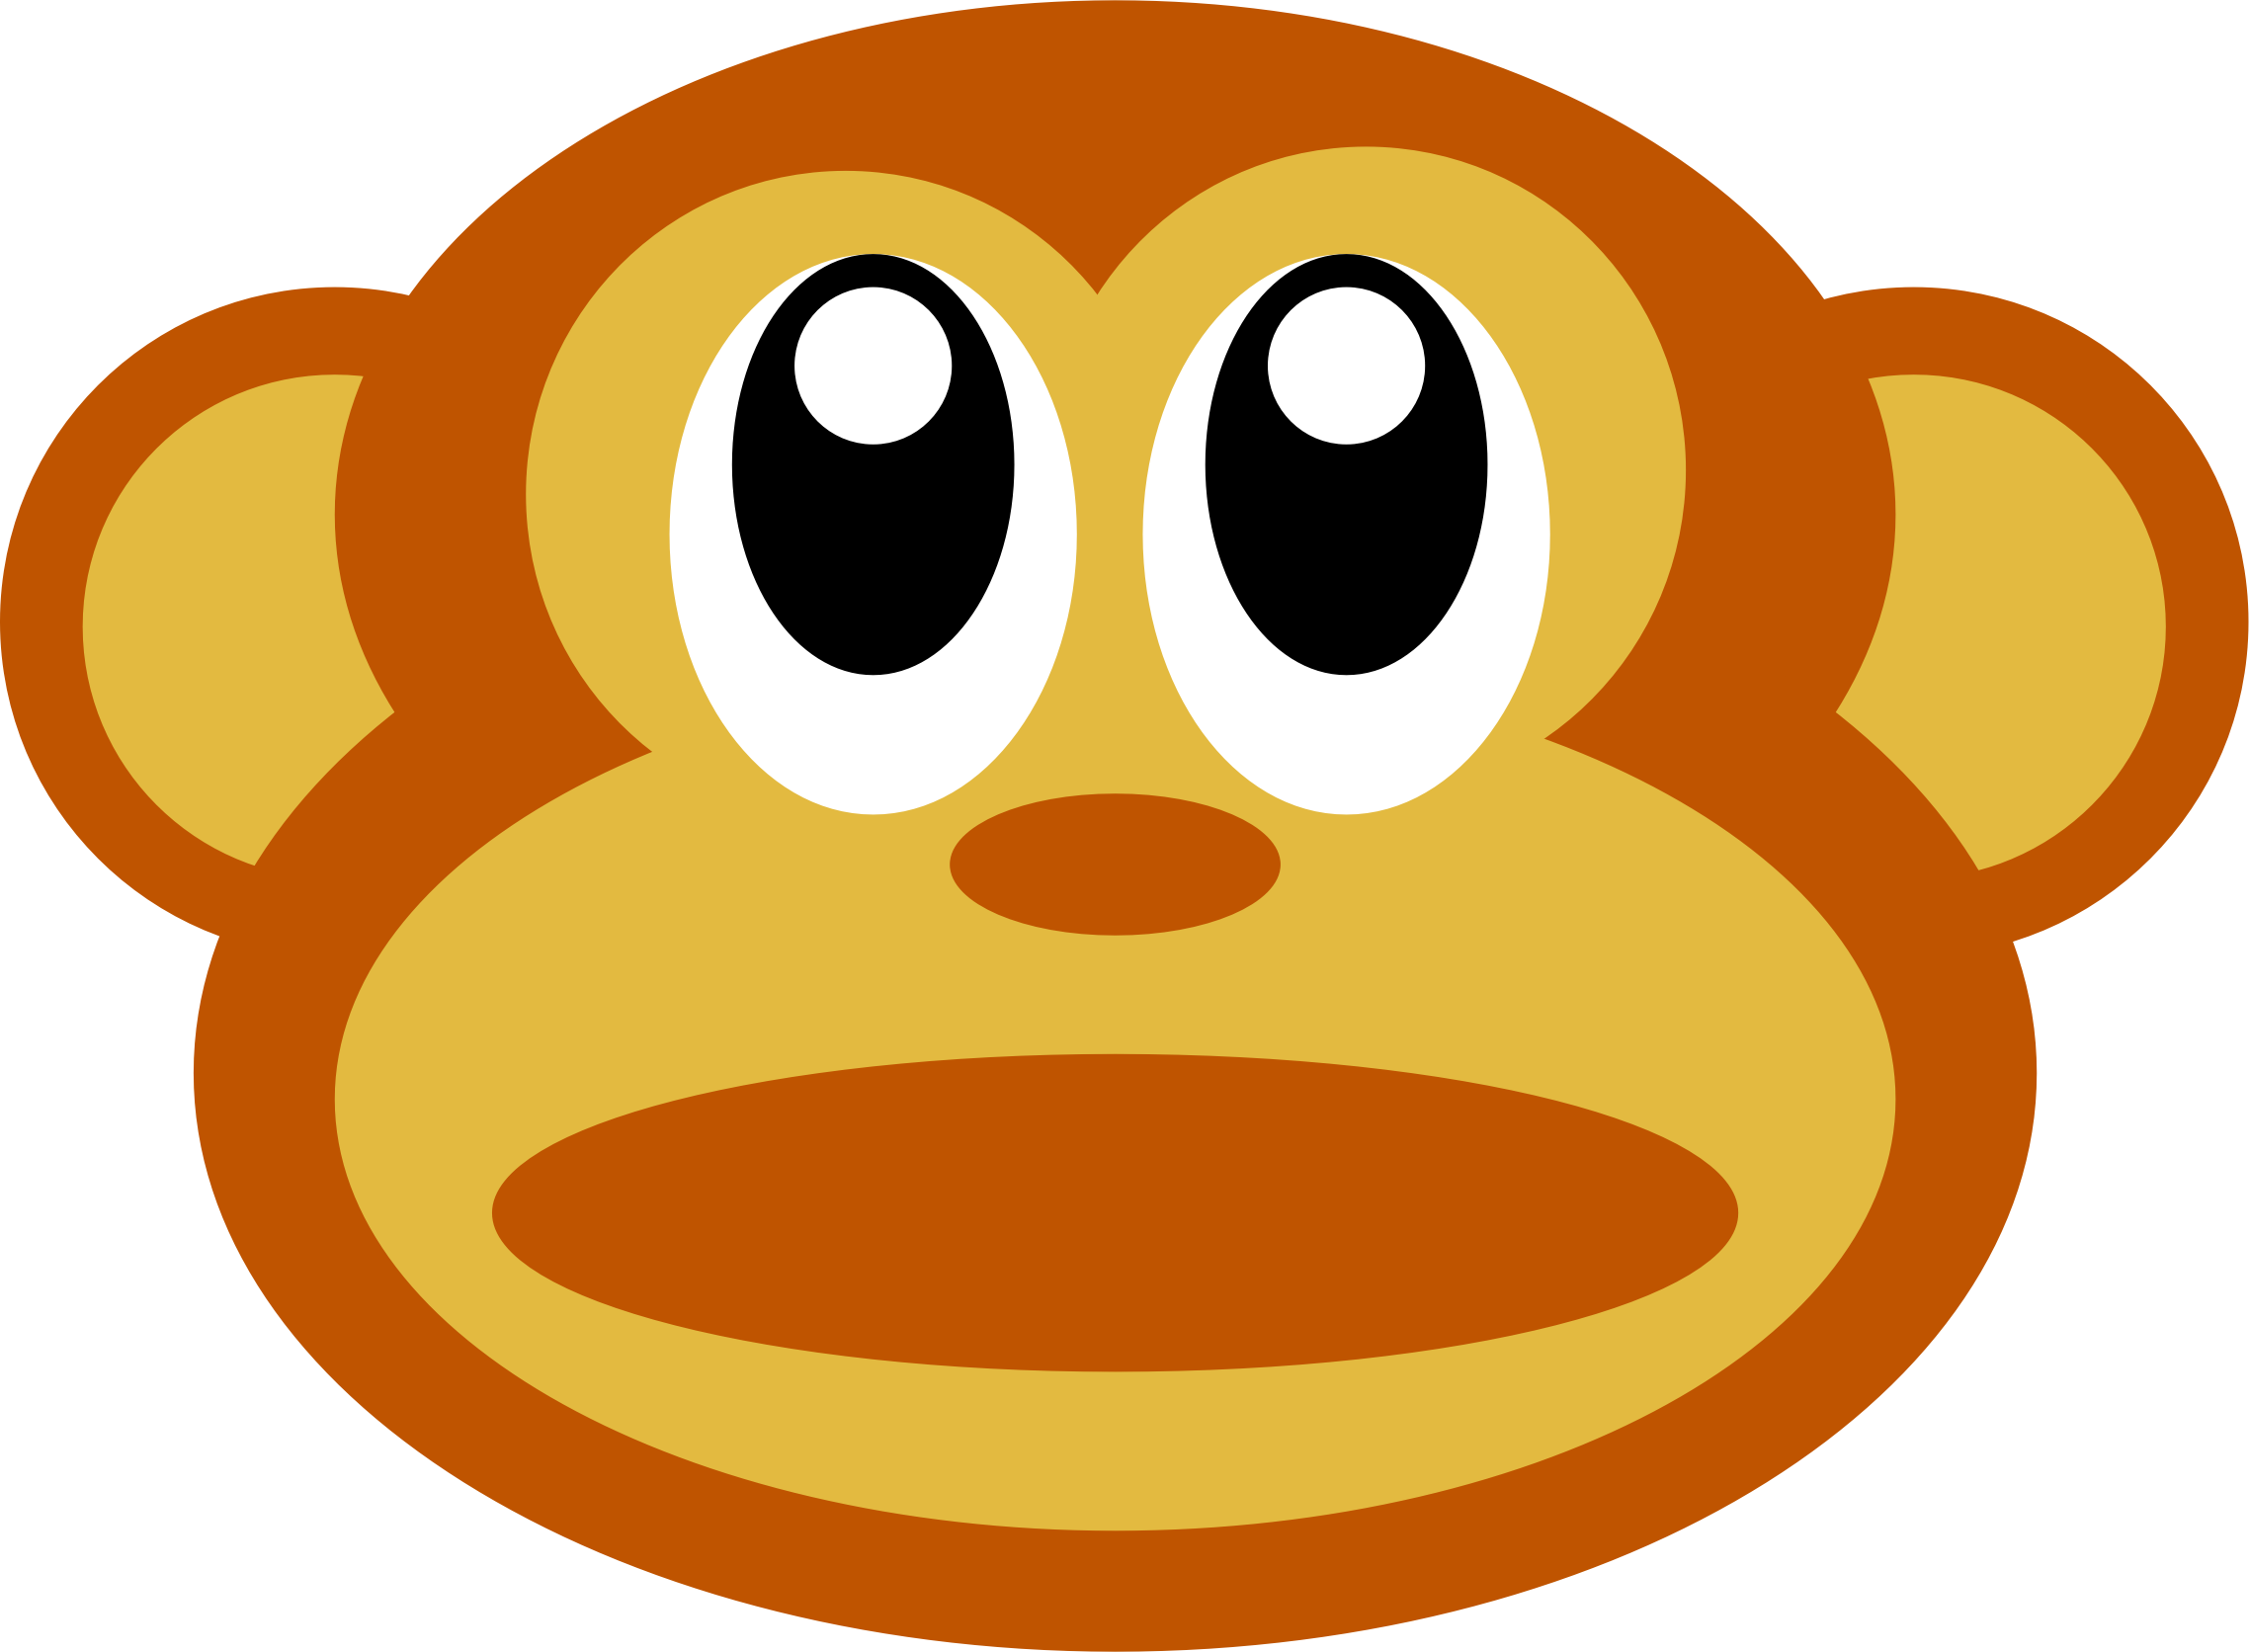 Monkey Face Clipart #1. BIG IMAGE (PNG)